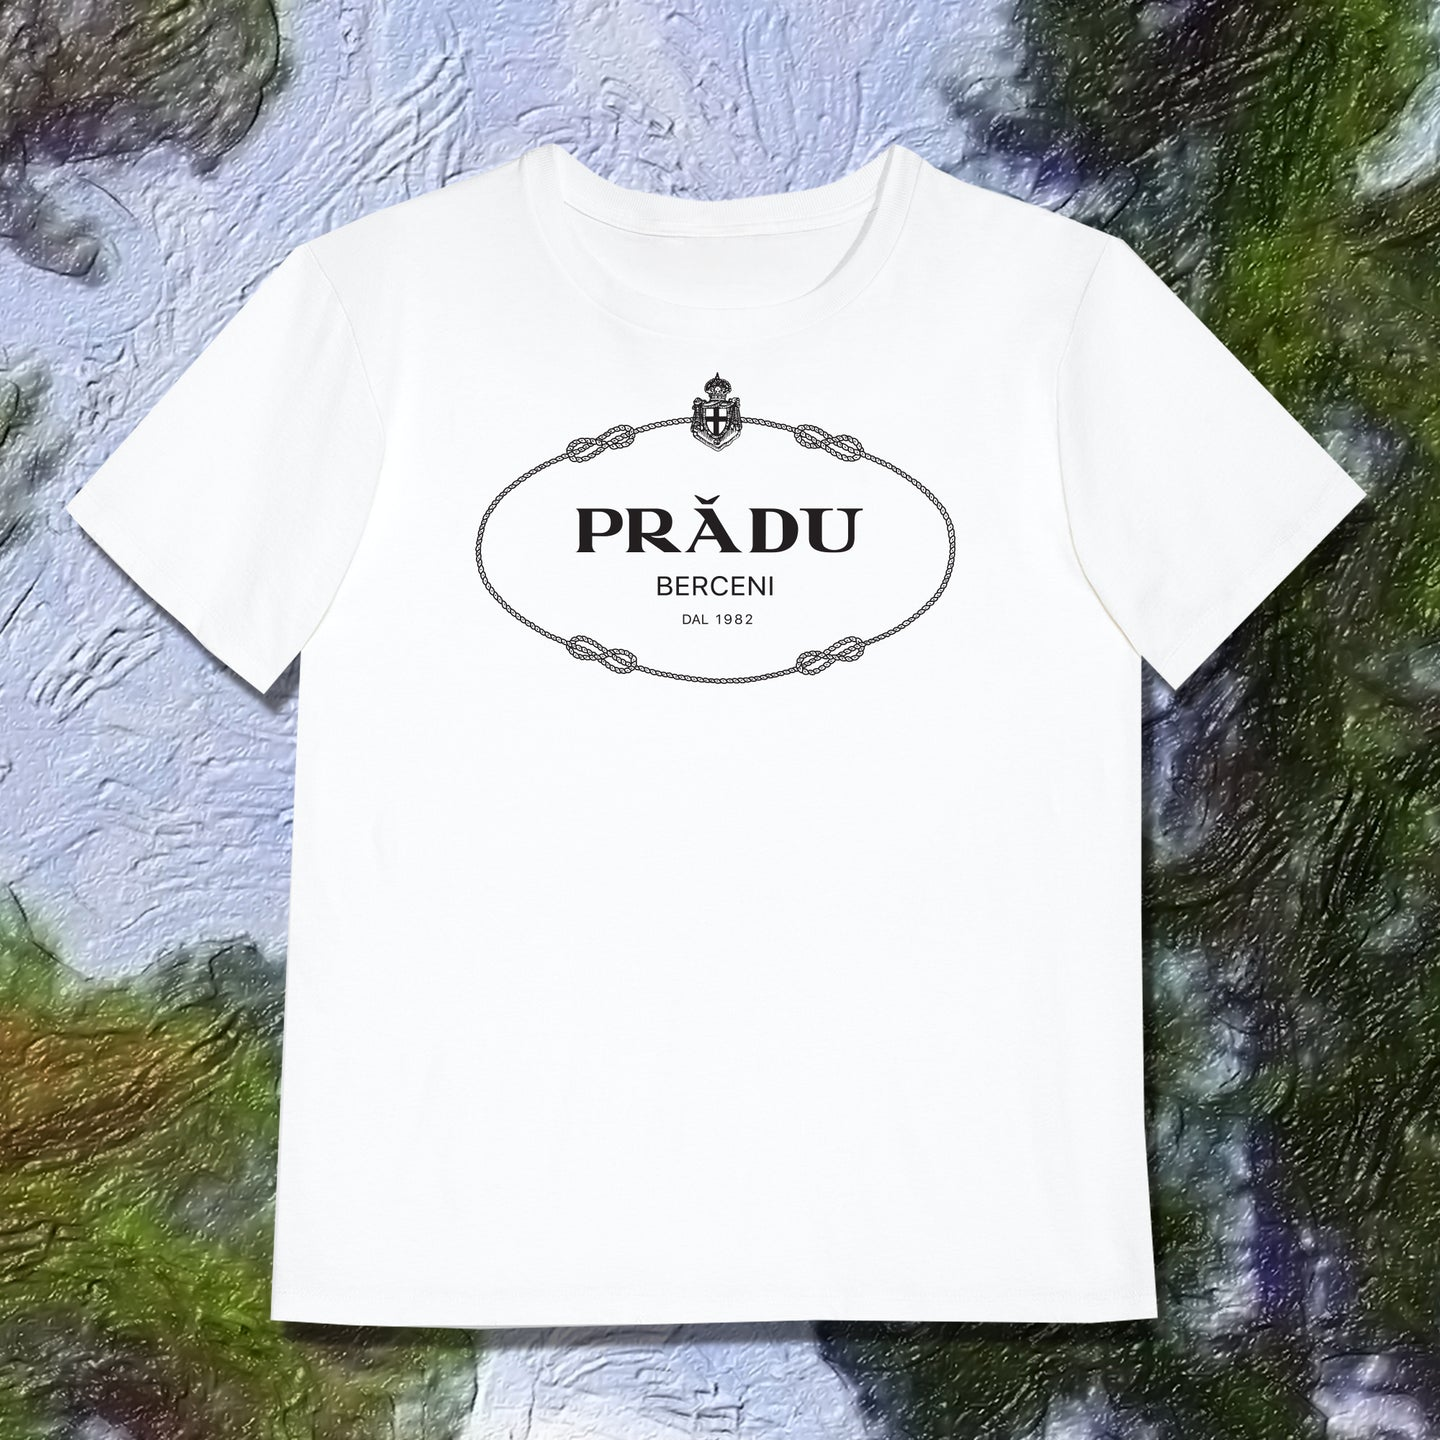 PRADU T-SHIRT - GIRL